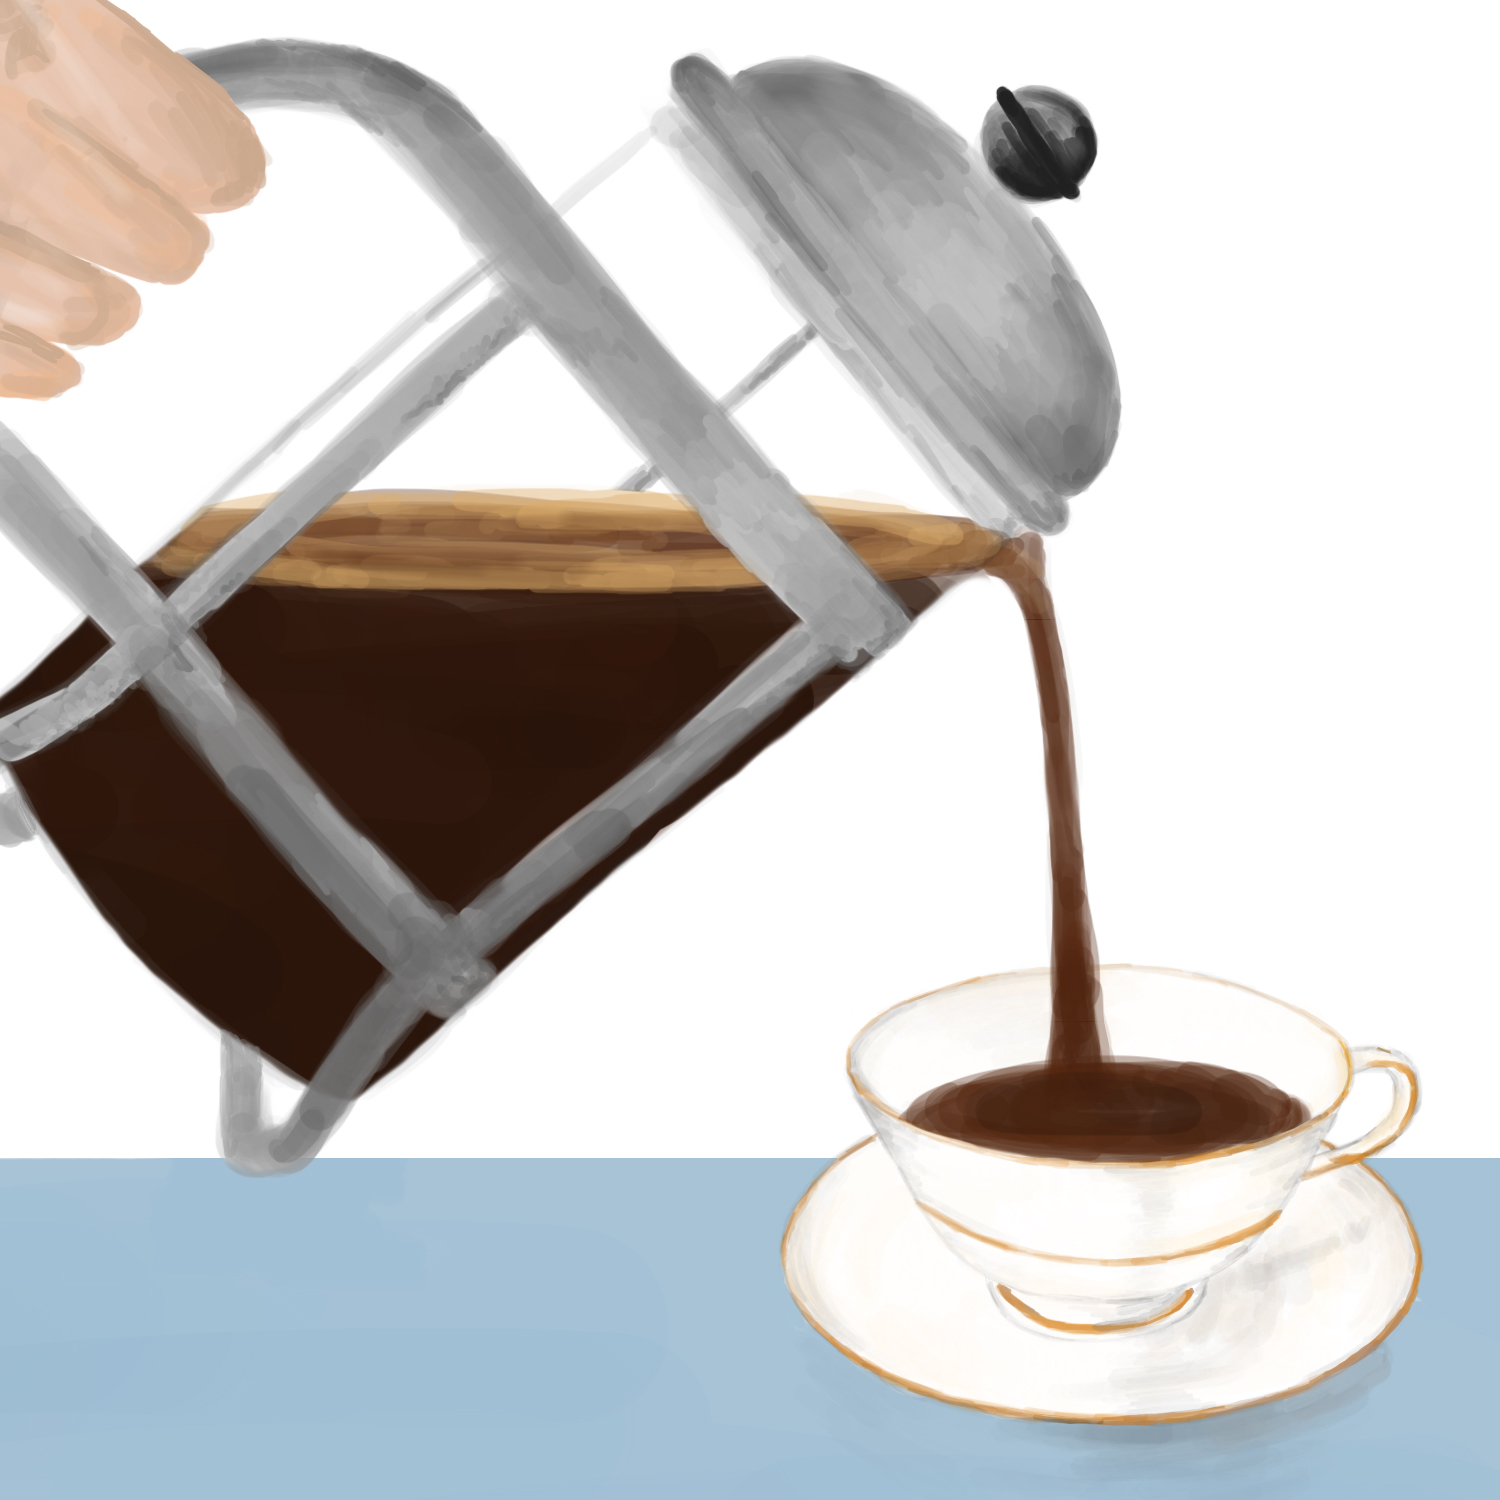 French press coffee being poured into a teacup